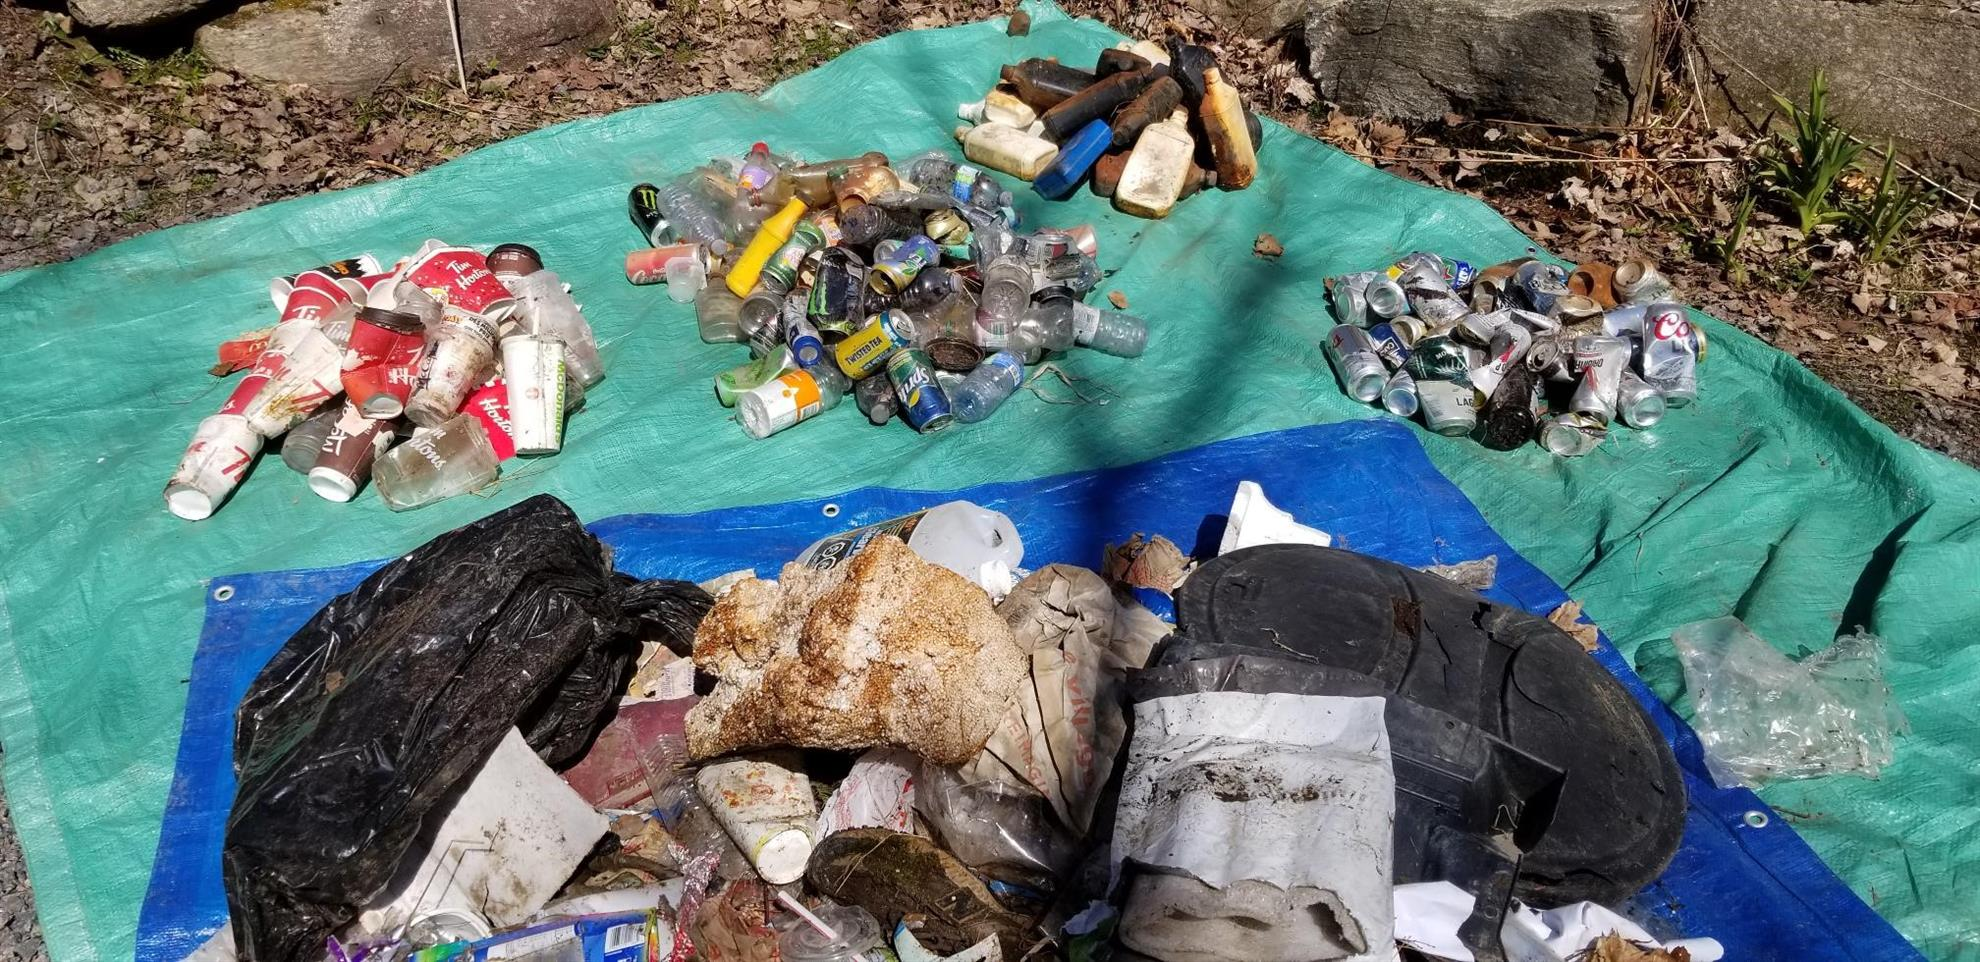 A tarp covered in collected trash.